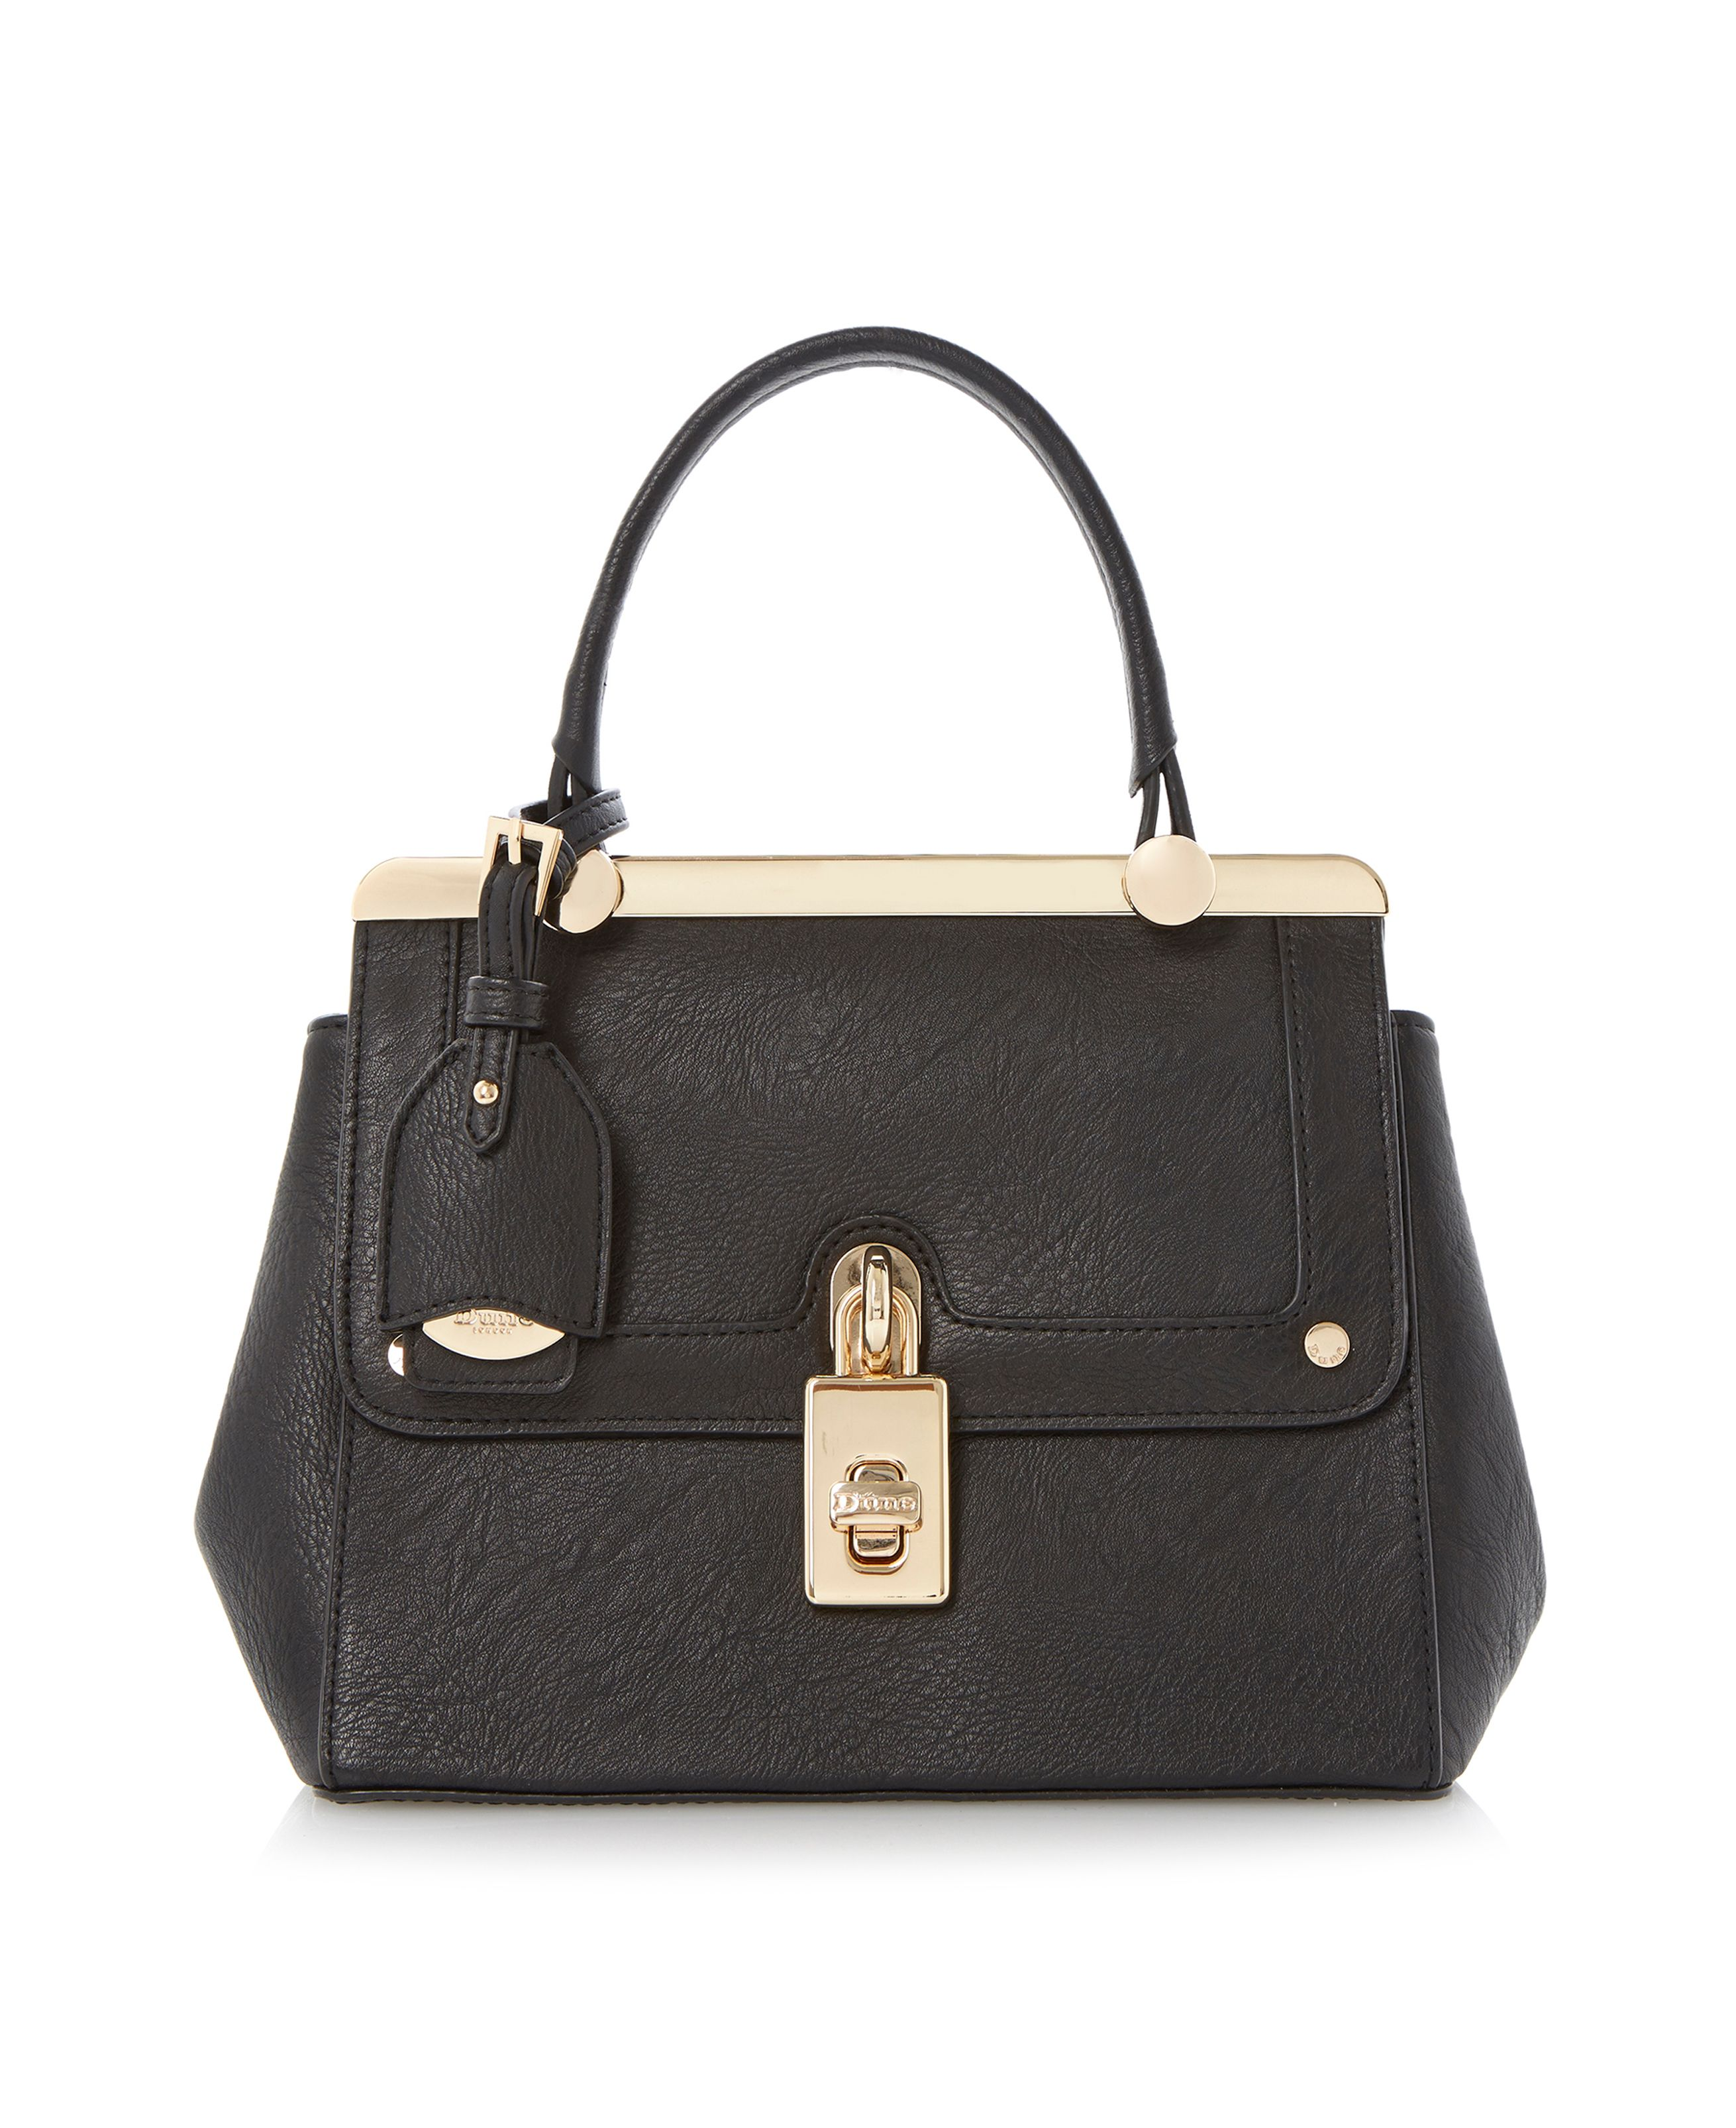 Dinidramey mini front framed bag